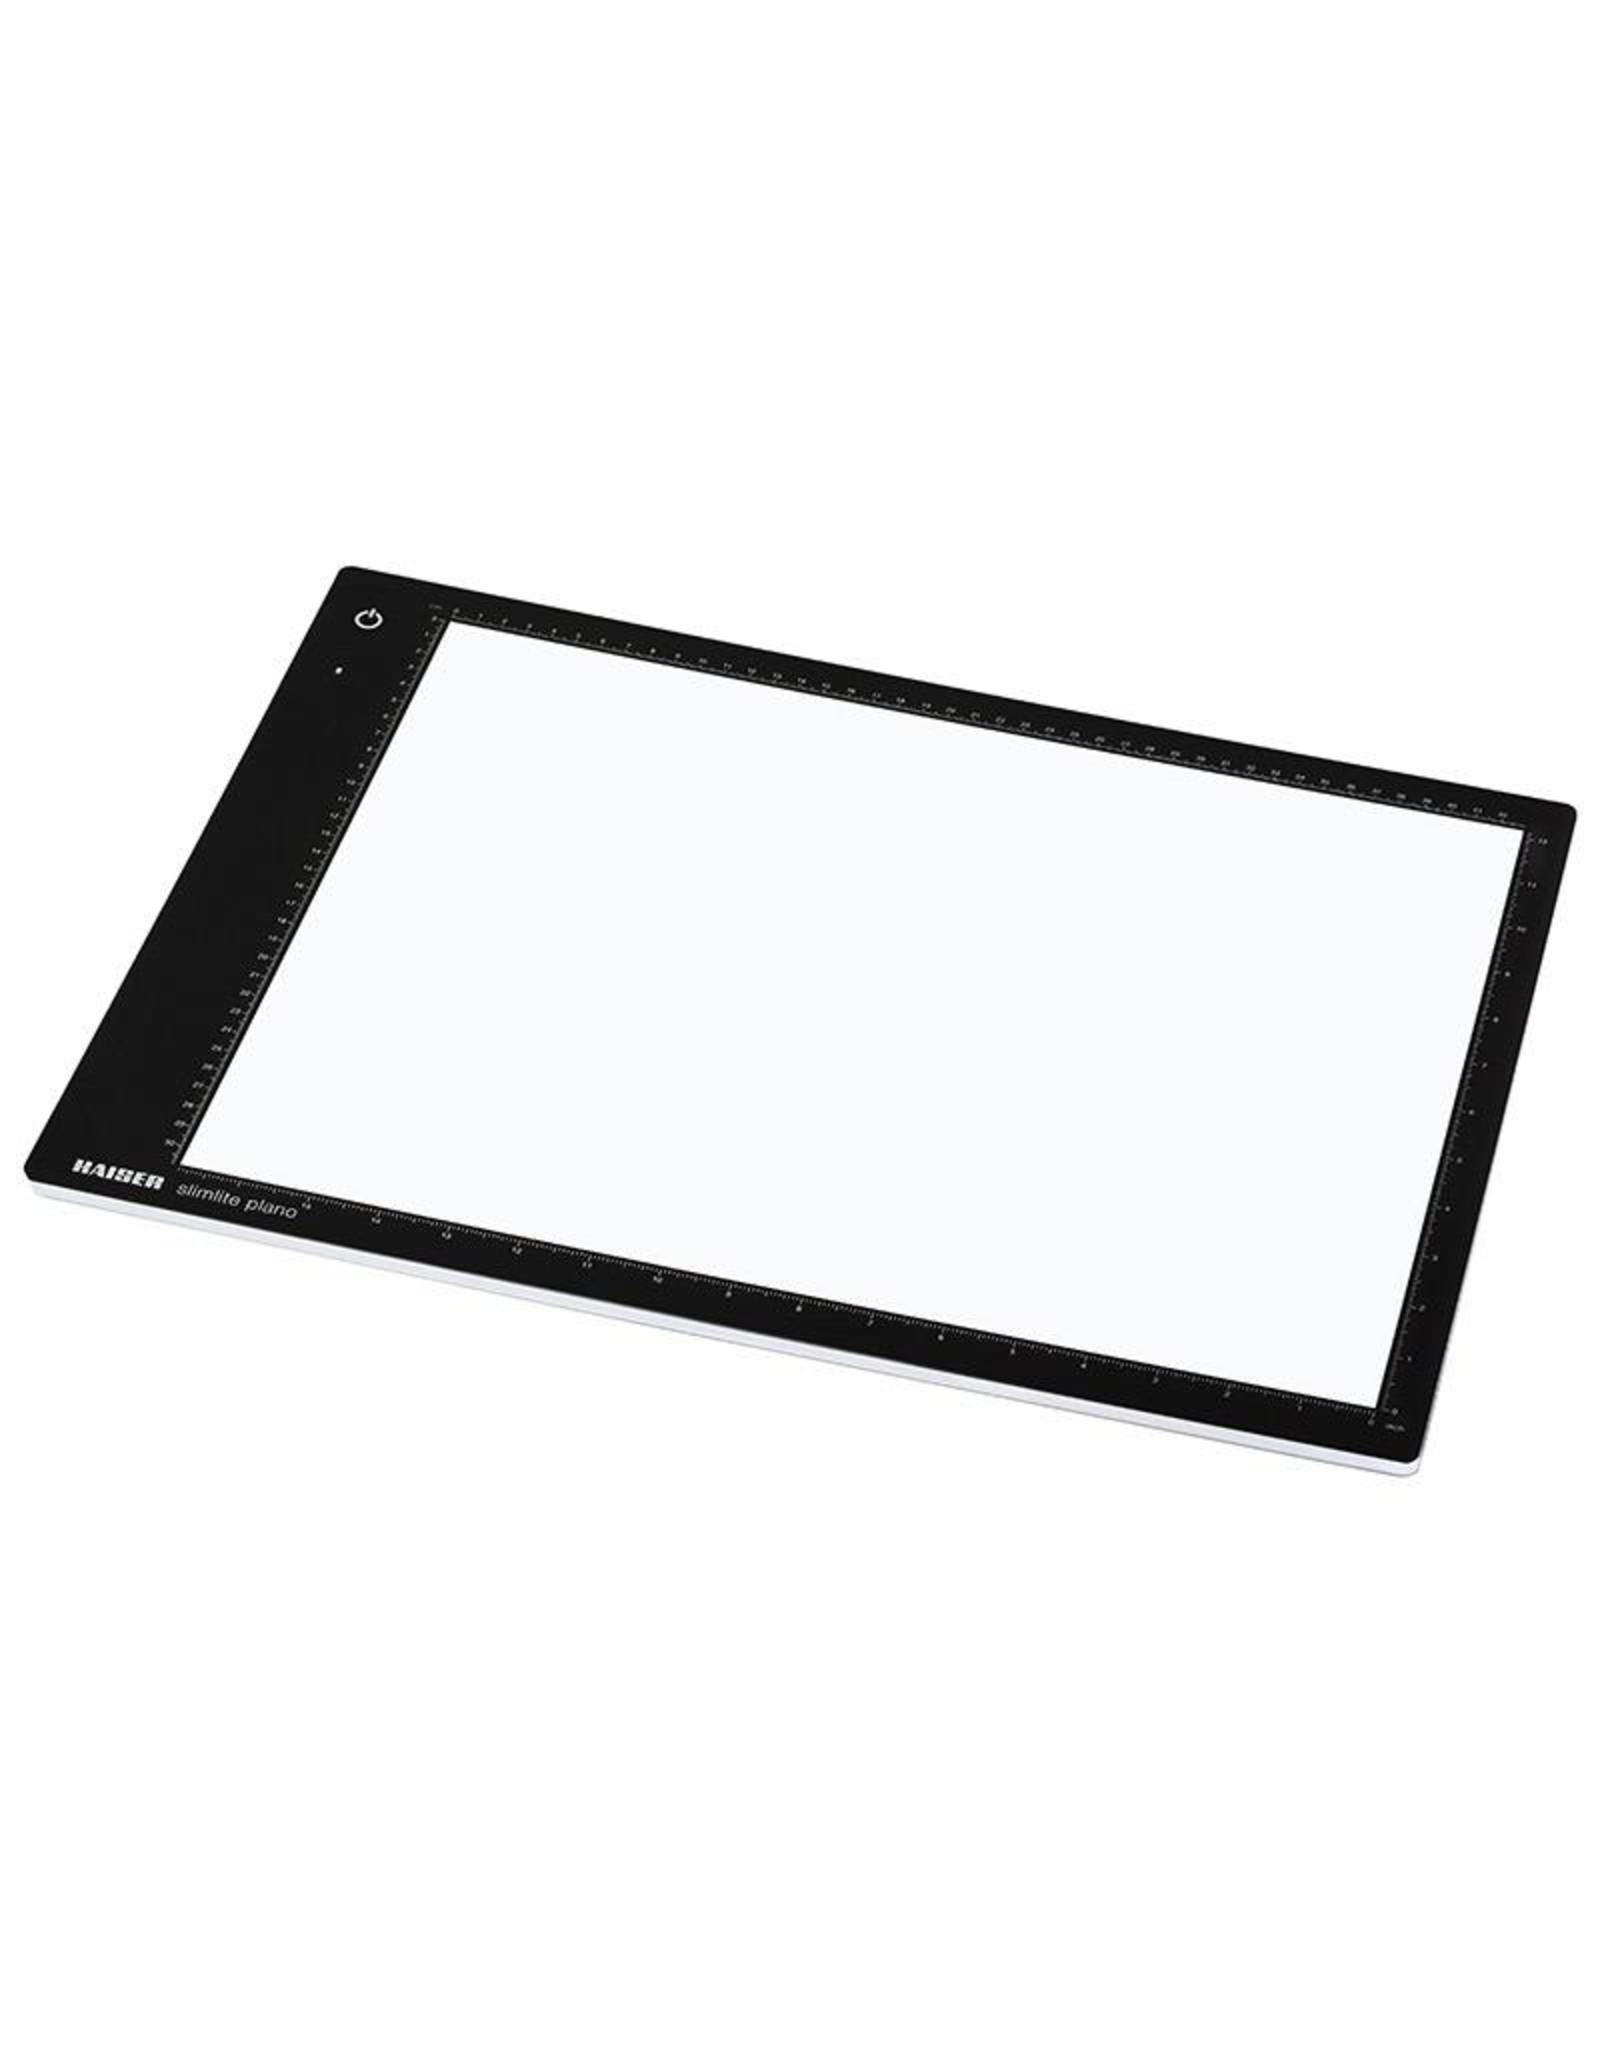 Kaiser Kaiser slimlite plano LED Light Box (Large), 5000 K, dimmable.